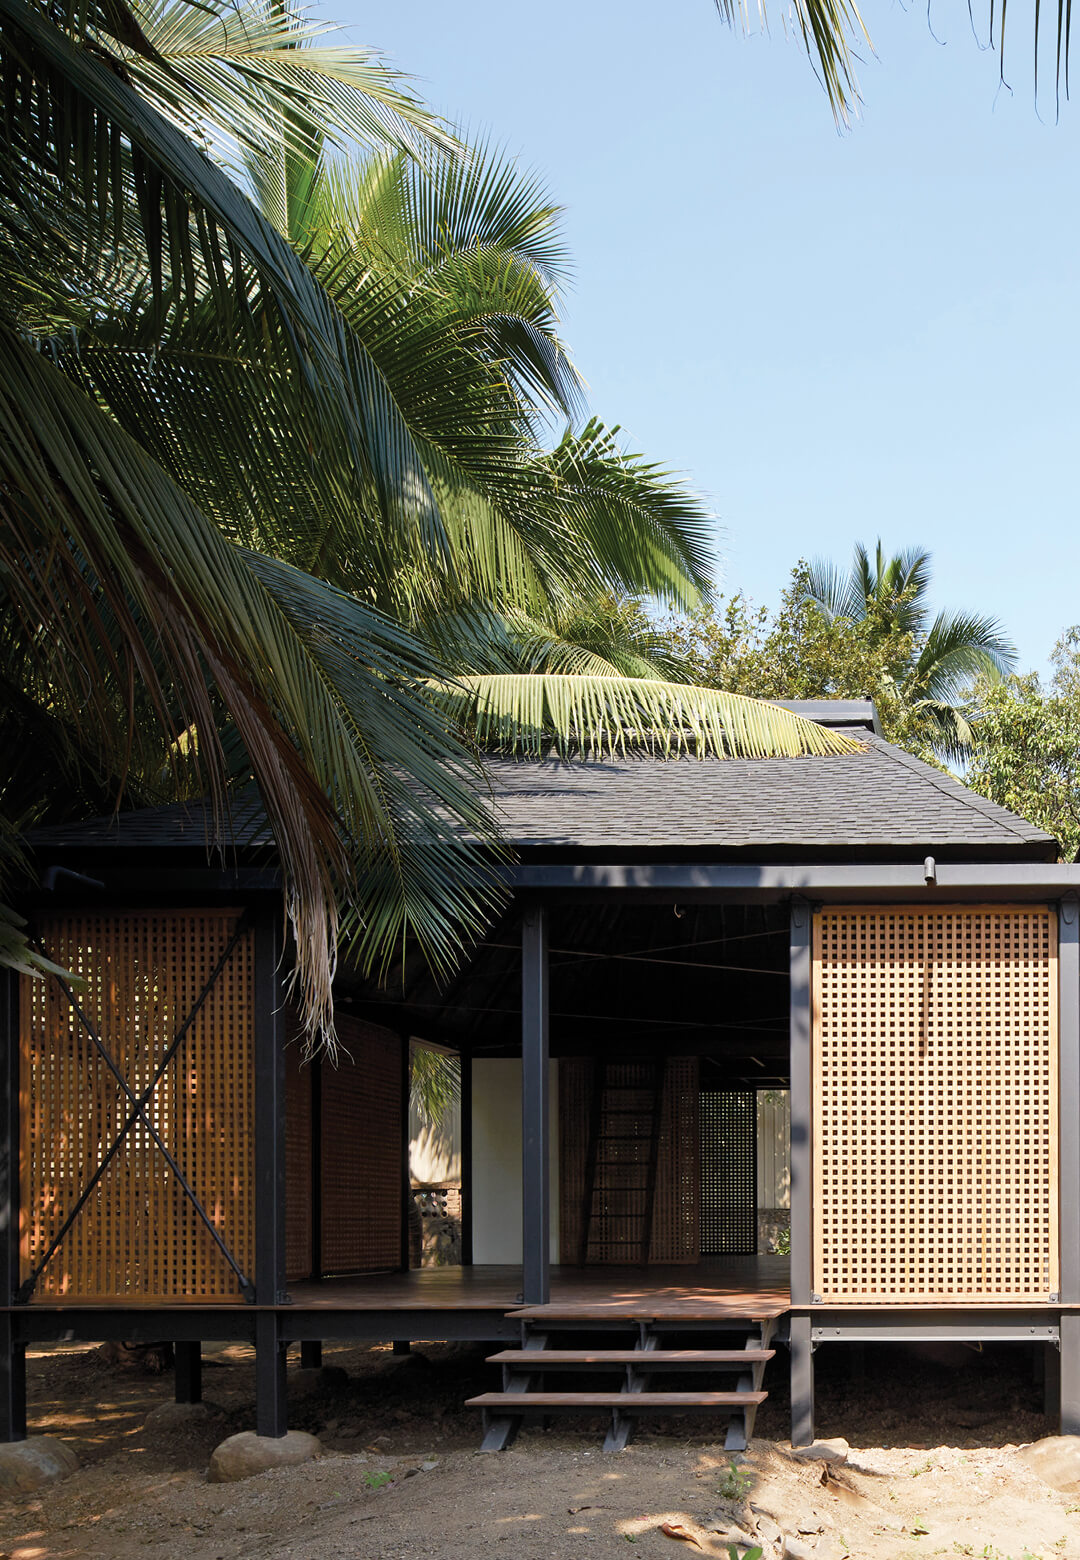 Designed by Architecture BRIO, Mumbai Artist Retreat sits nestled between palm trees in Alibag, India | Mumbai Artist Retreat by Architecture BRIO | STIRworld